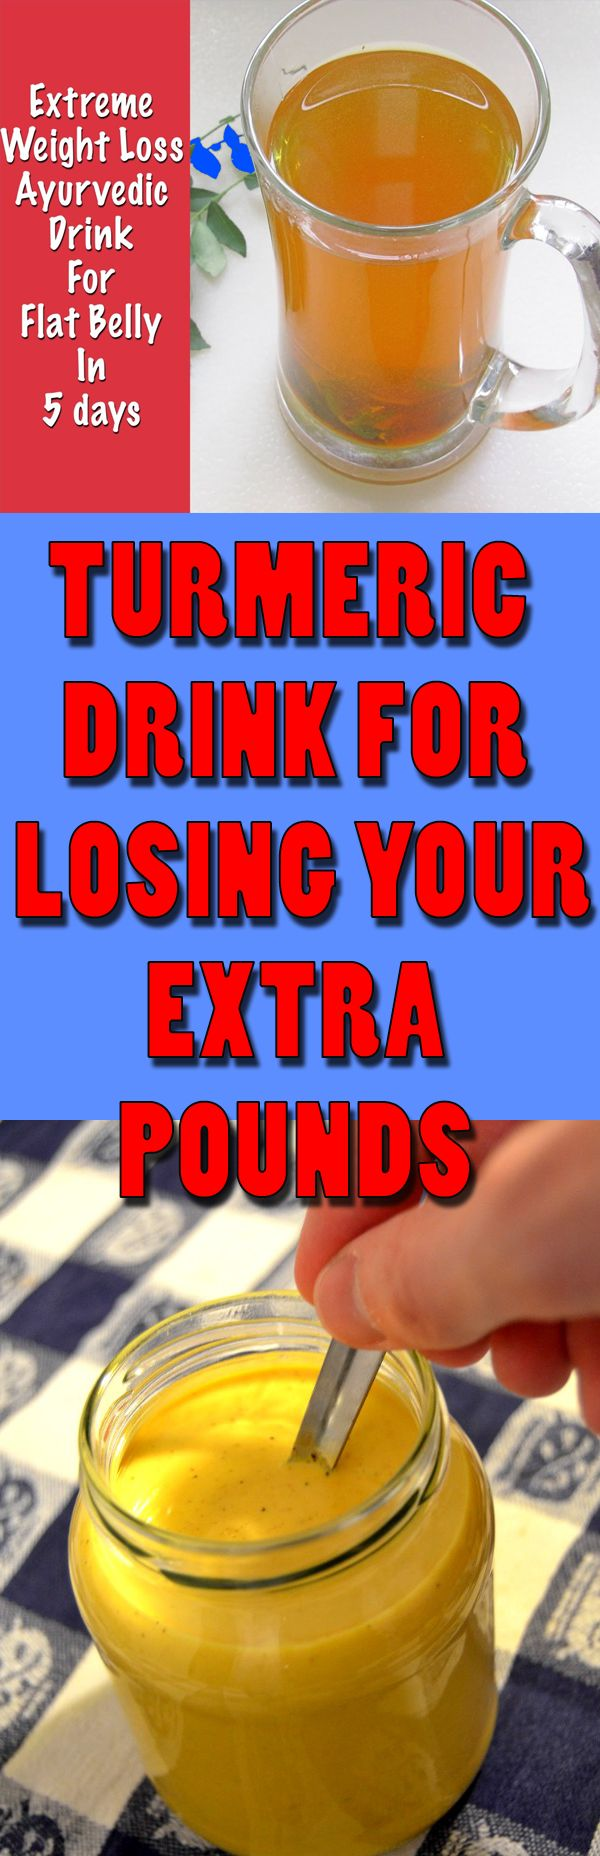 Turmeric Drink for Losing Your Extra Pounds #lose #weight #loseweight #turmeric #lose extraweight #howtoloseweightfast